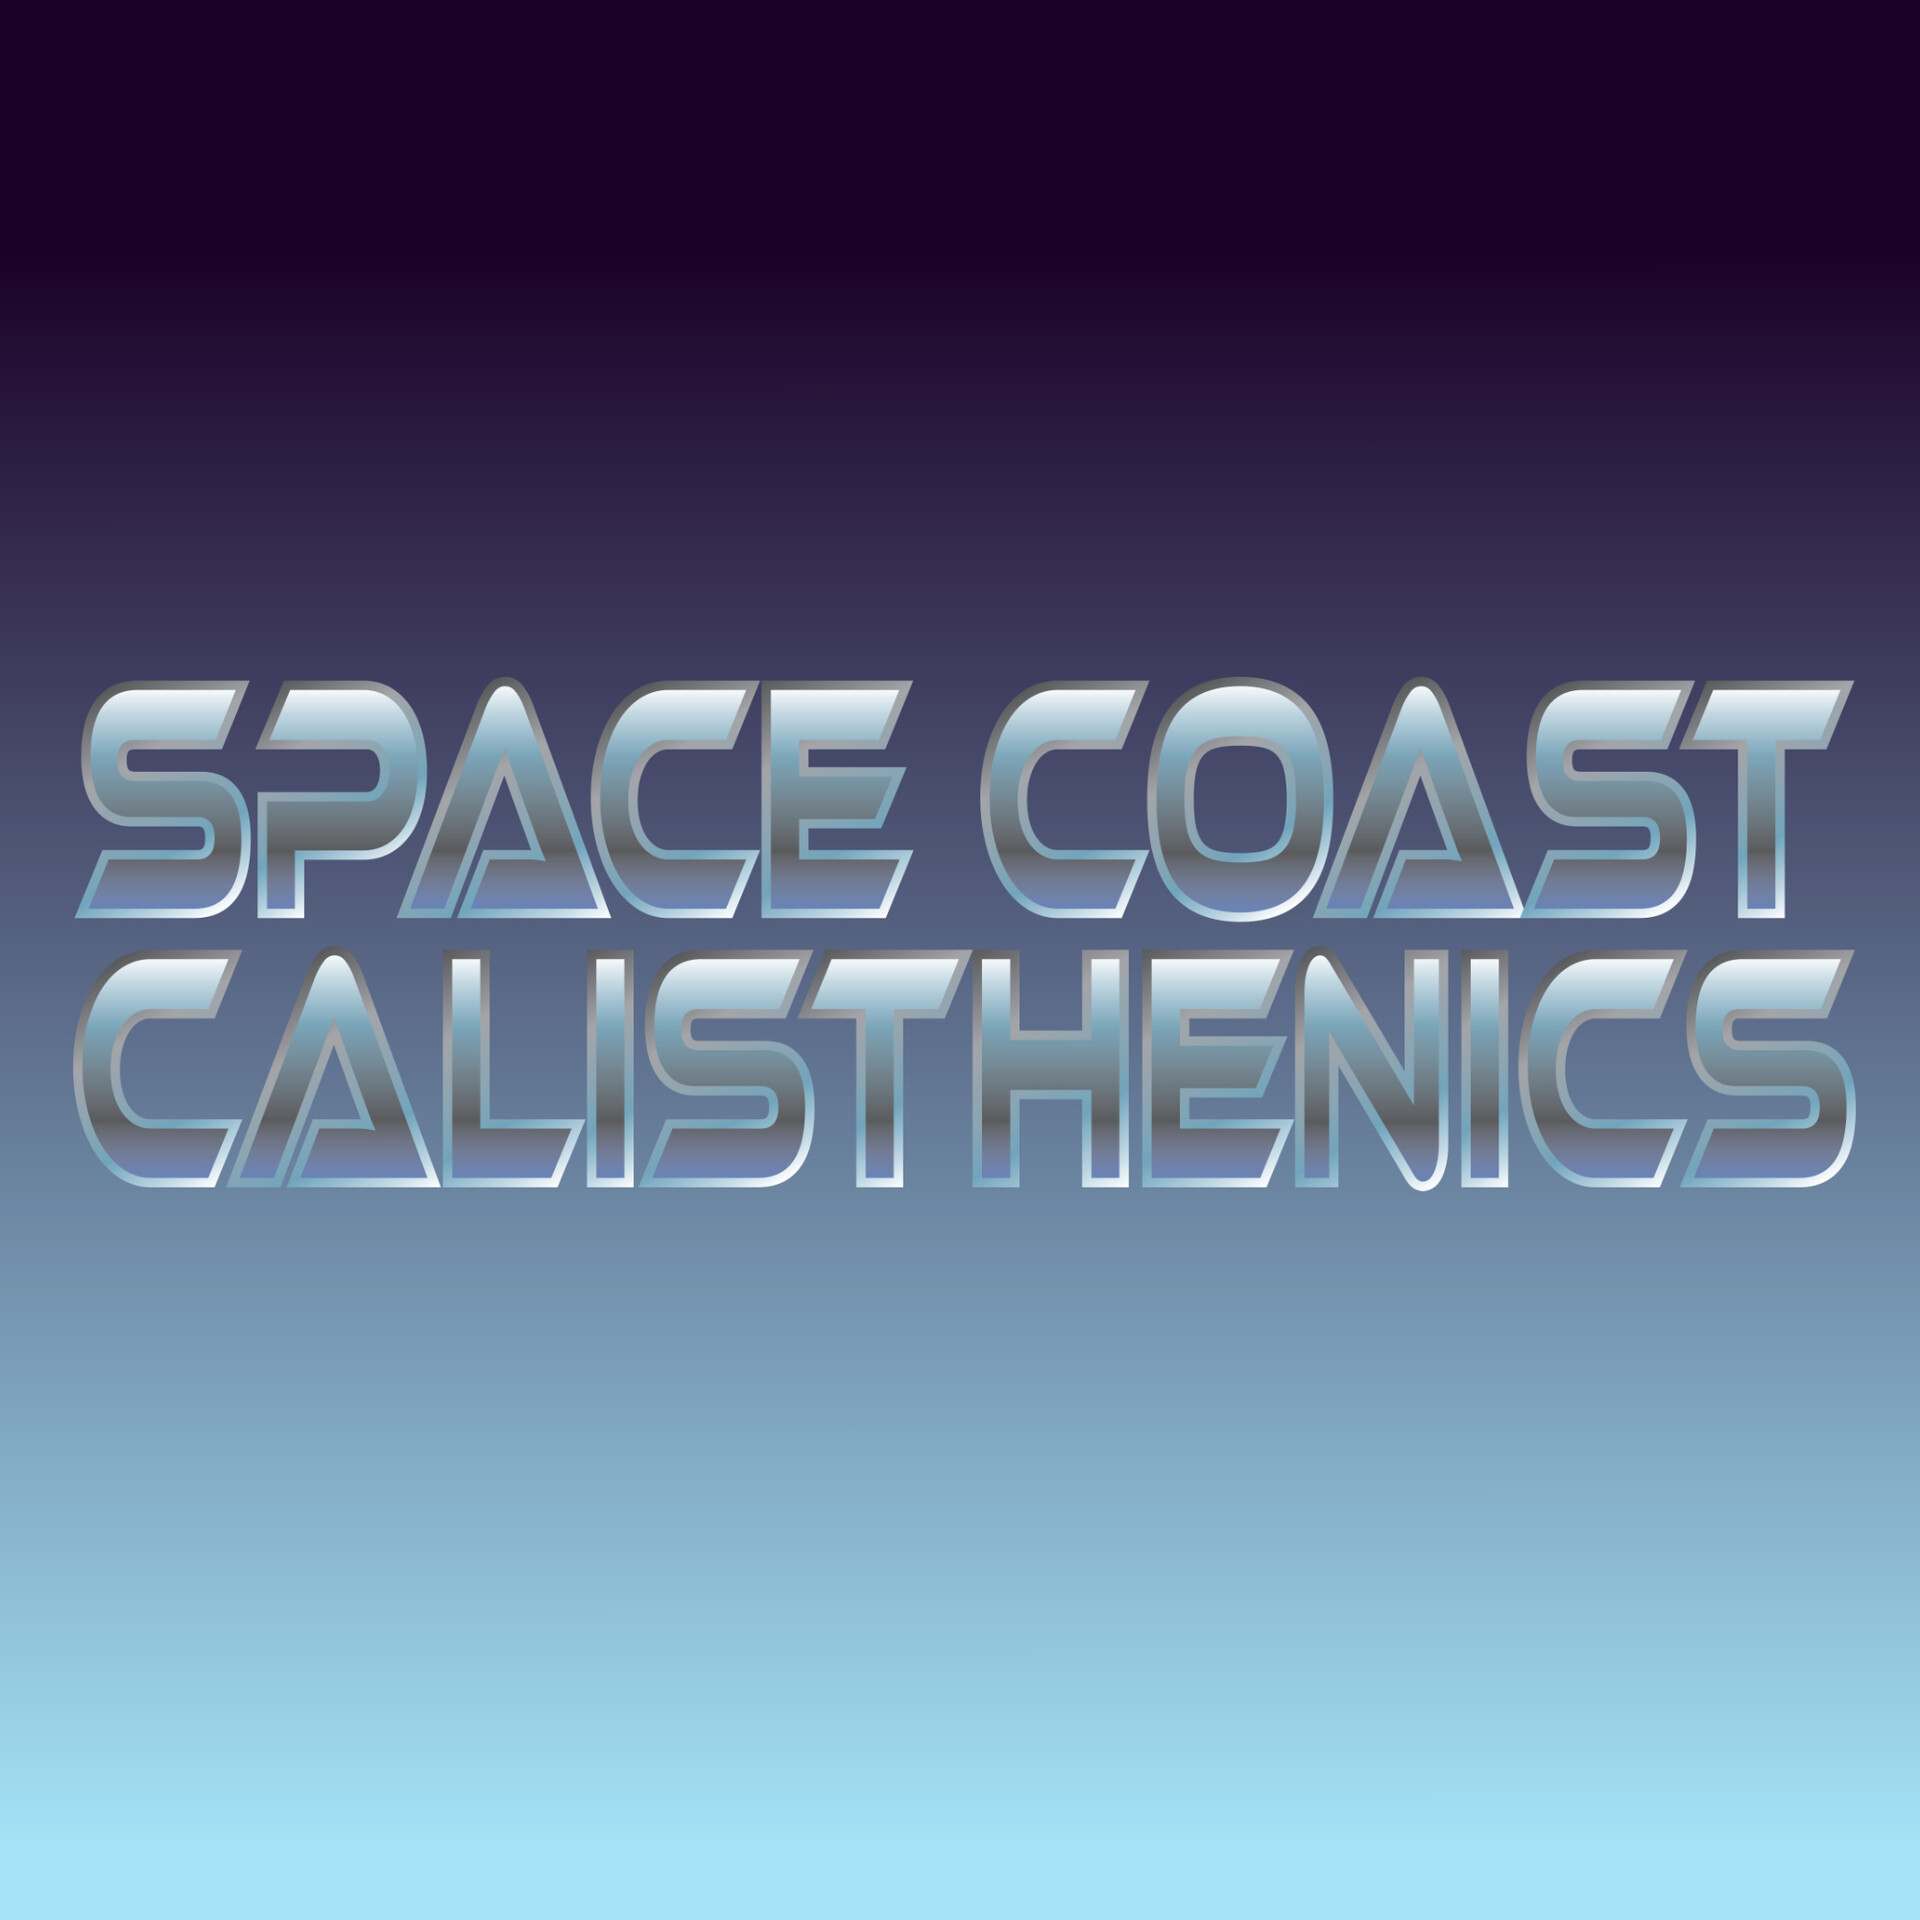 Space Coast Calisthenics logo design.